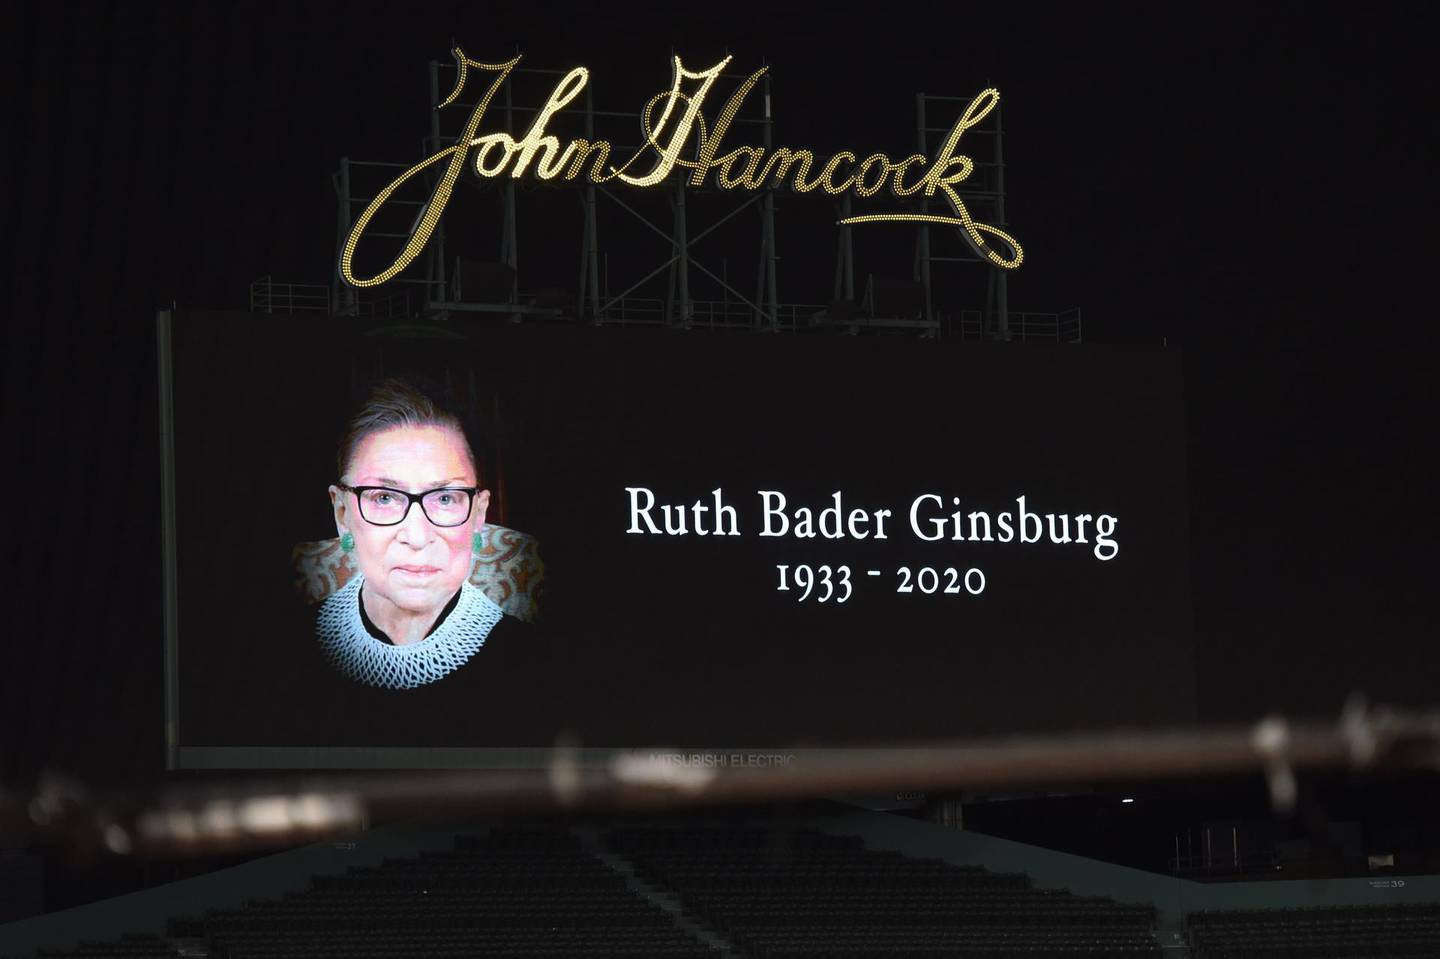 Sep 19, 2020; Boston, Massachusetts, USA;  A tribute in honor of Court Justice Ruth Bader Ginsburg who passed away on Friday September 18th is seen on the center field Jumbotron prior to a game between the Boston Red Sox and New York Yankees at Fenway Park. Mandatory Credit: Bob DeChiara-USA TODAY Sports